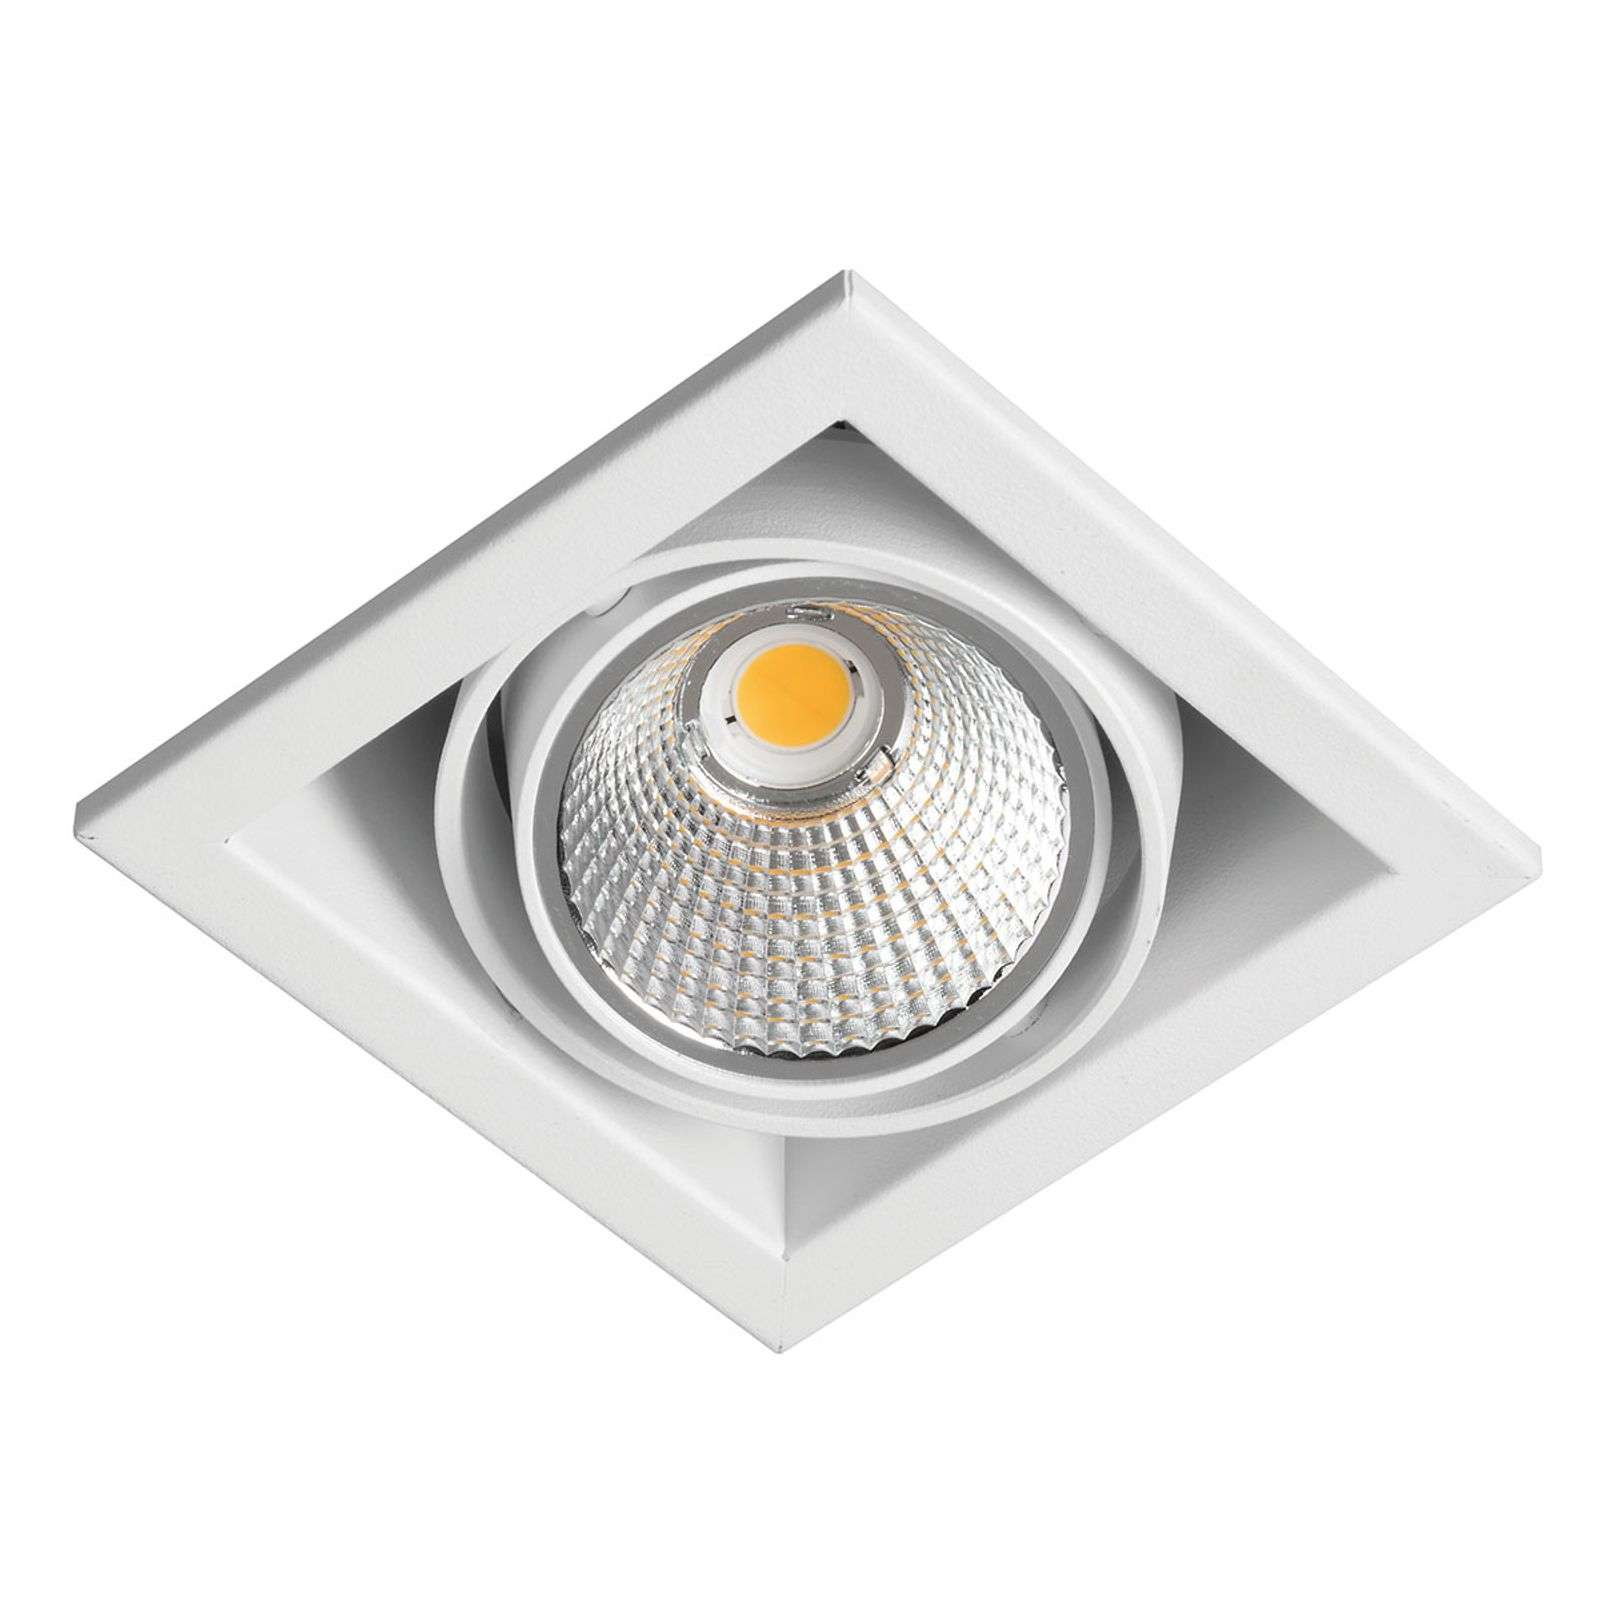 Zipar Uno Recessed spot encastrable LED 12W 3 000K